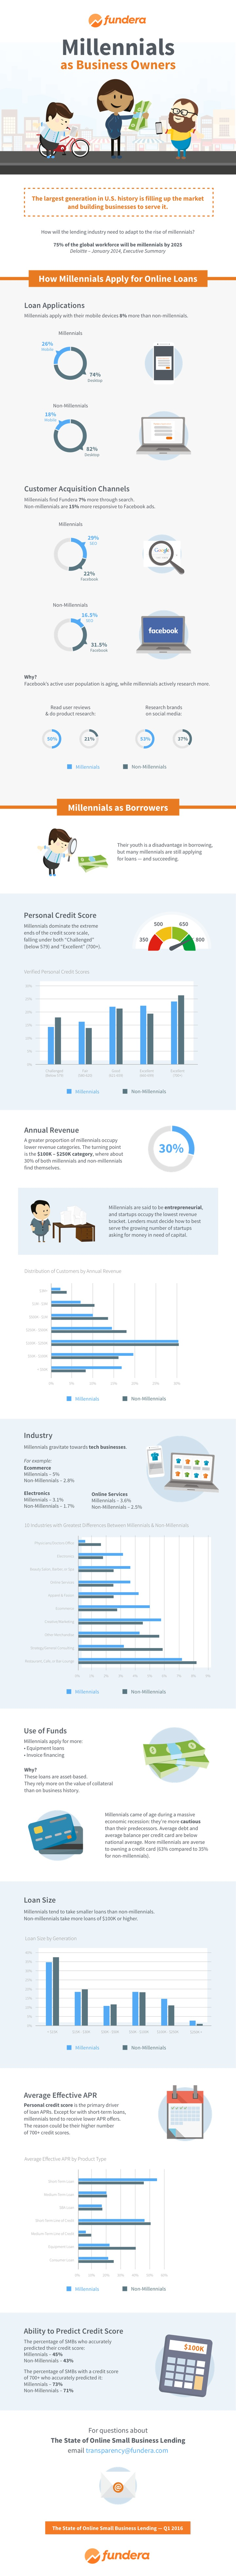 millennials-as-business-owners-infographic